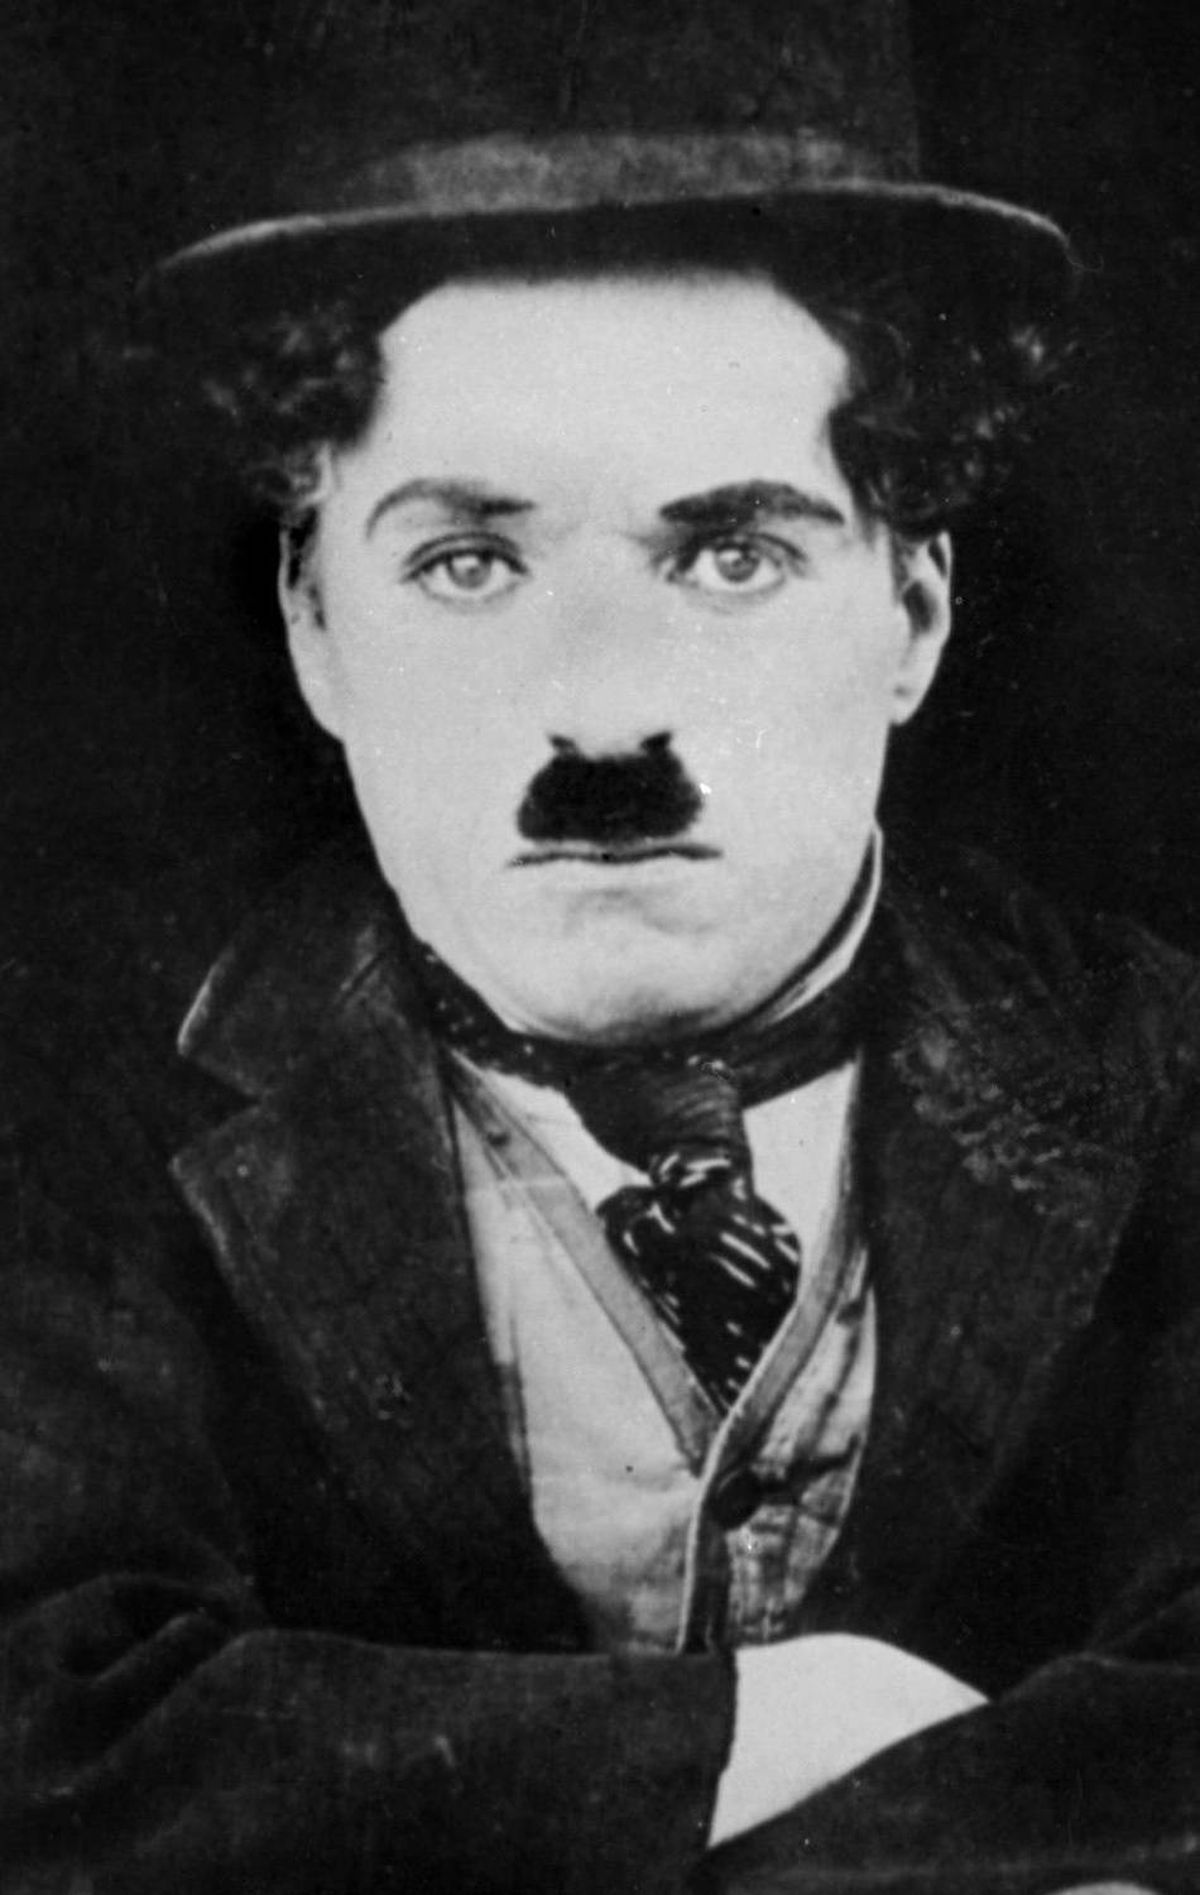 The pioneer of the stache, the founder of the fuzz - Charlie Chaplin rocked his facial hair like a gentleman and a scholar. Even in silent, colourless films, his manliness radiated - in large part due to that little strip of hair. We tip our hats to you, Charlie.